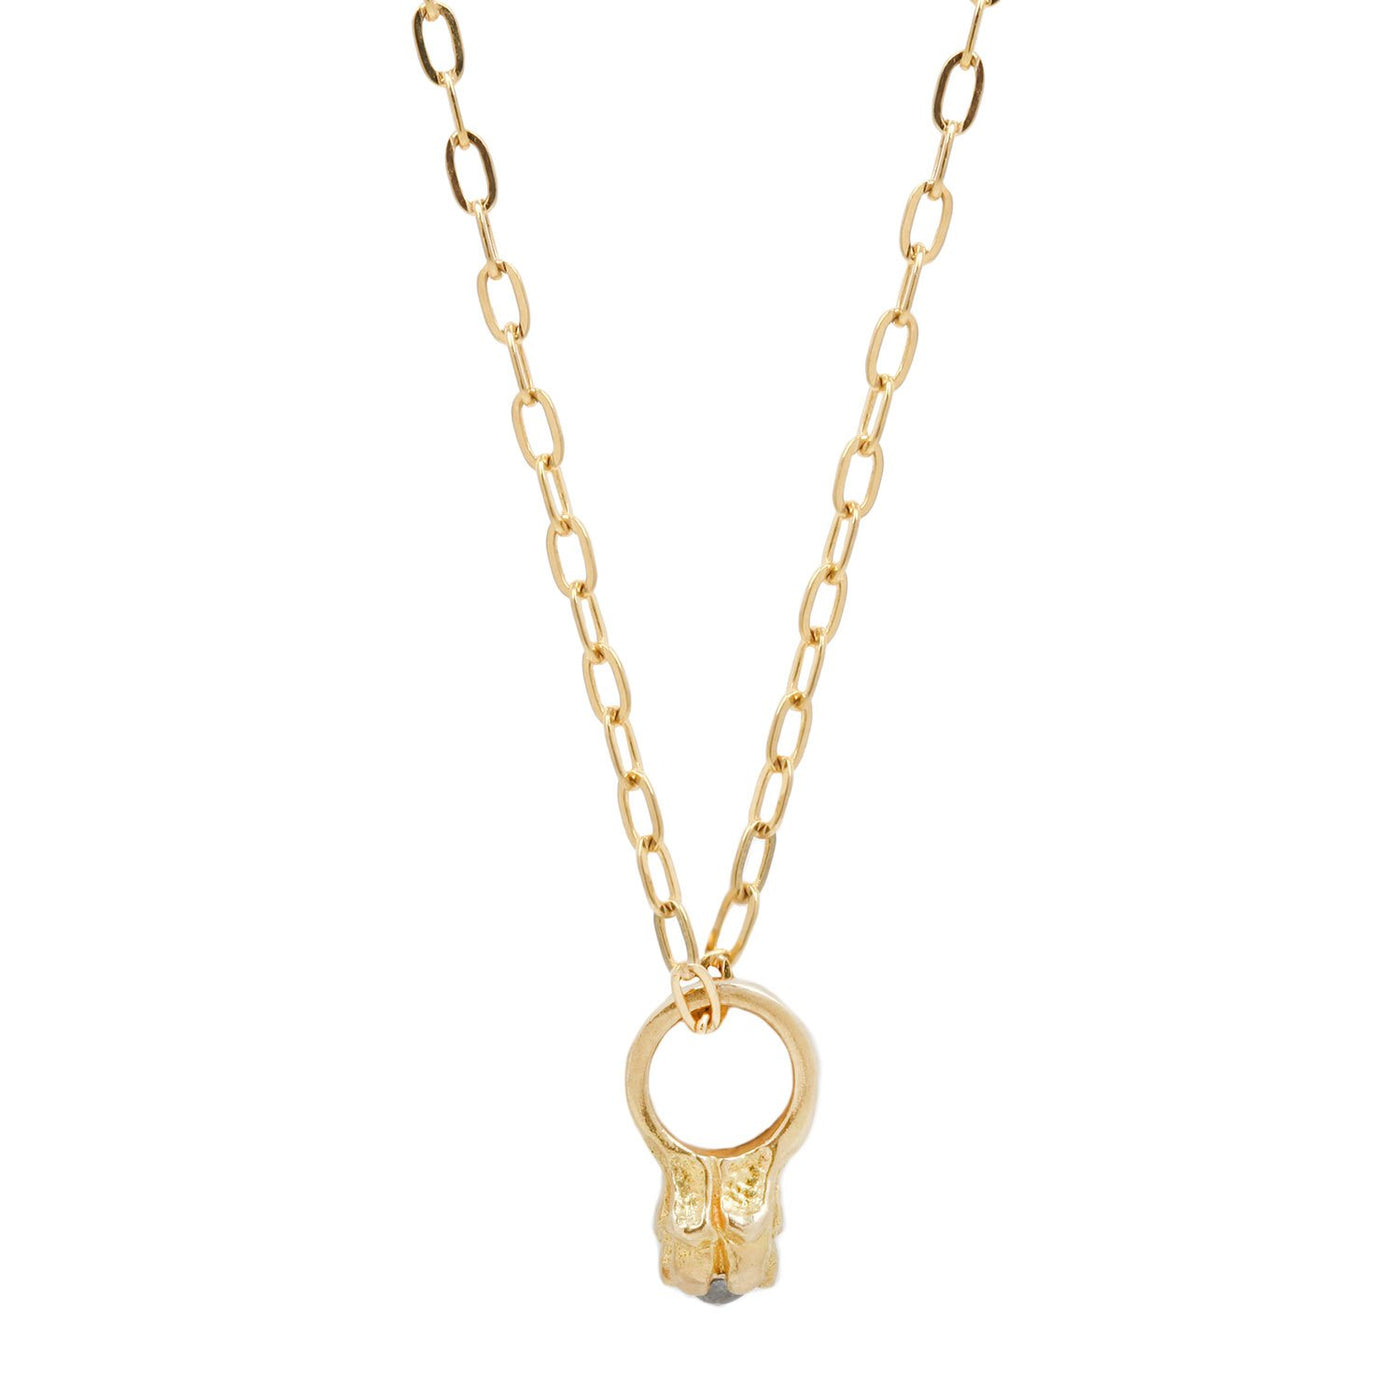 Susan Highsmith Diamond Babbey Necklace